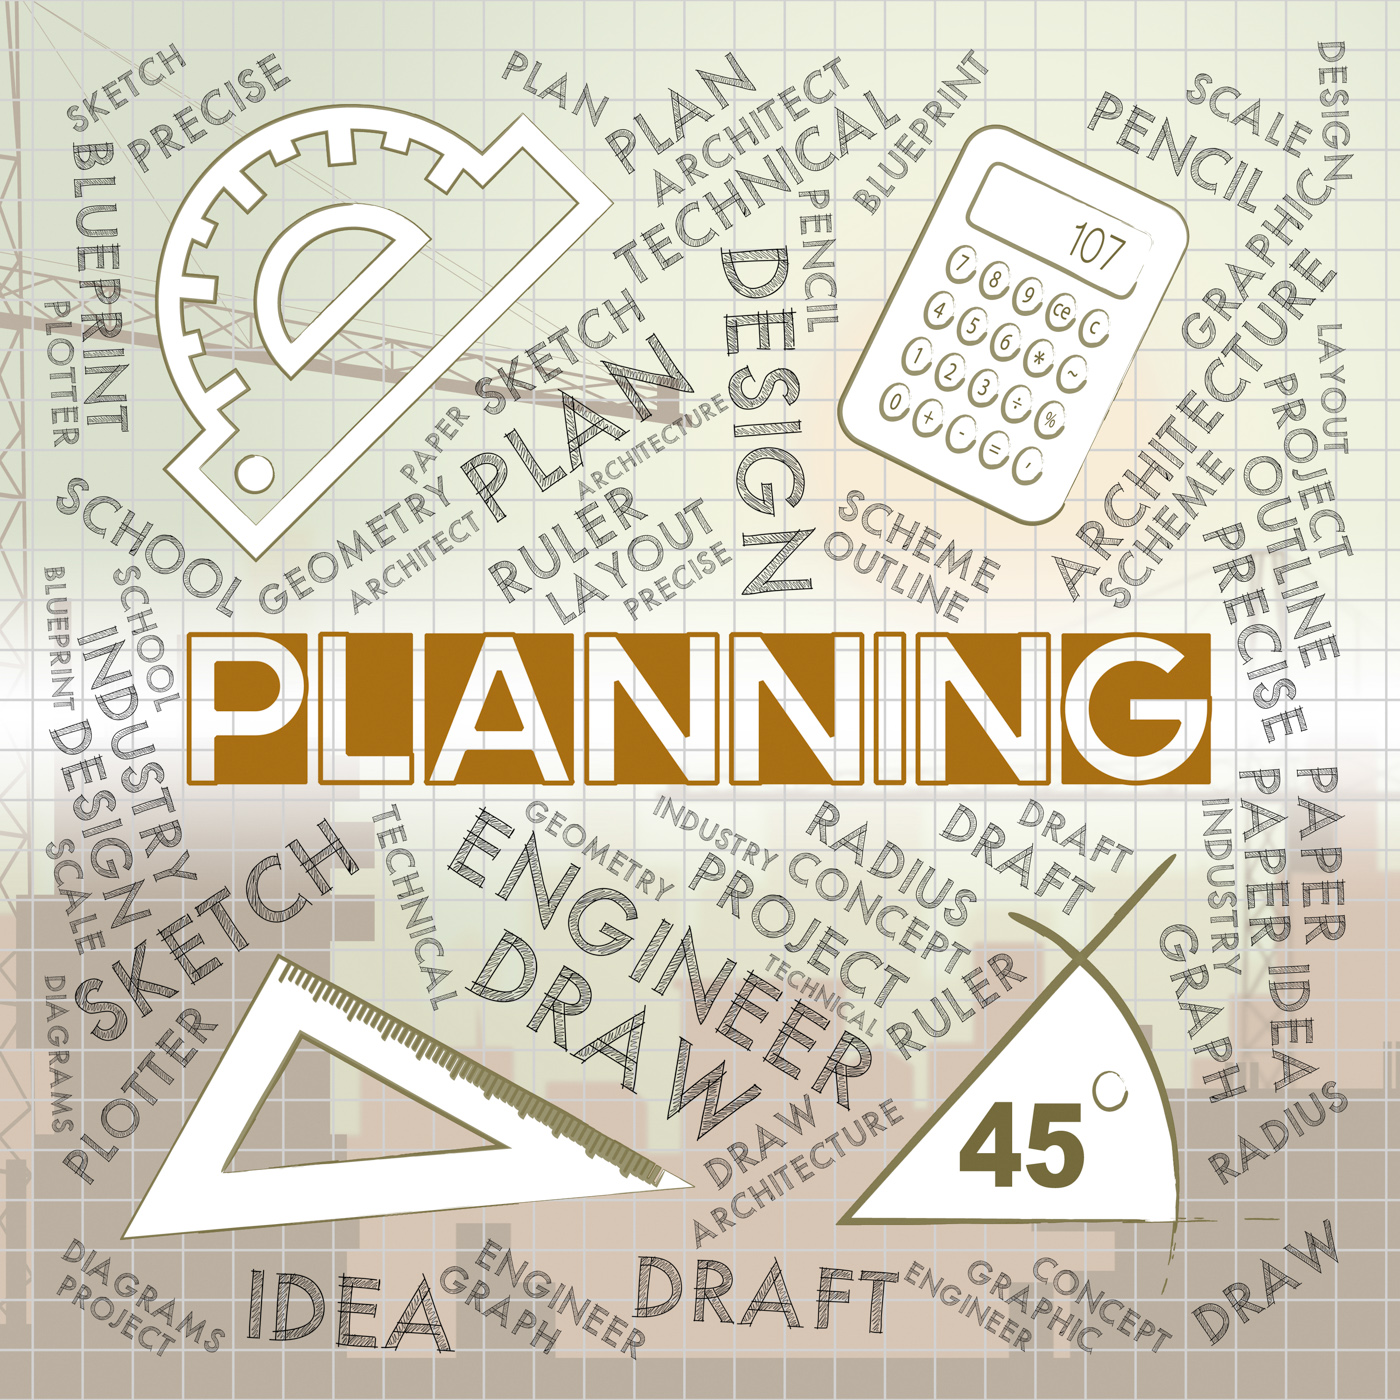 Planning Words Represents Mission Plans And Objectives, Aim, Organizer, Plans, Planning, HQ Photo